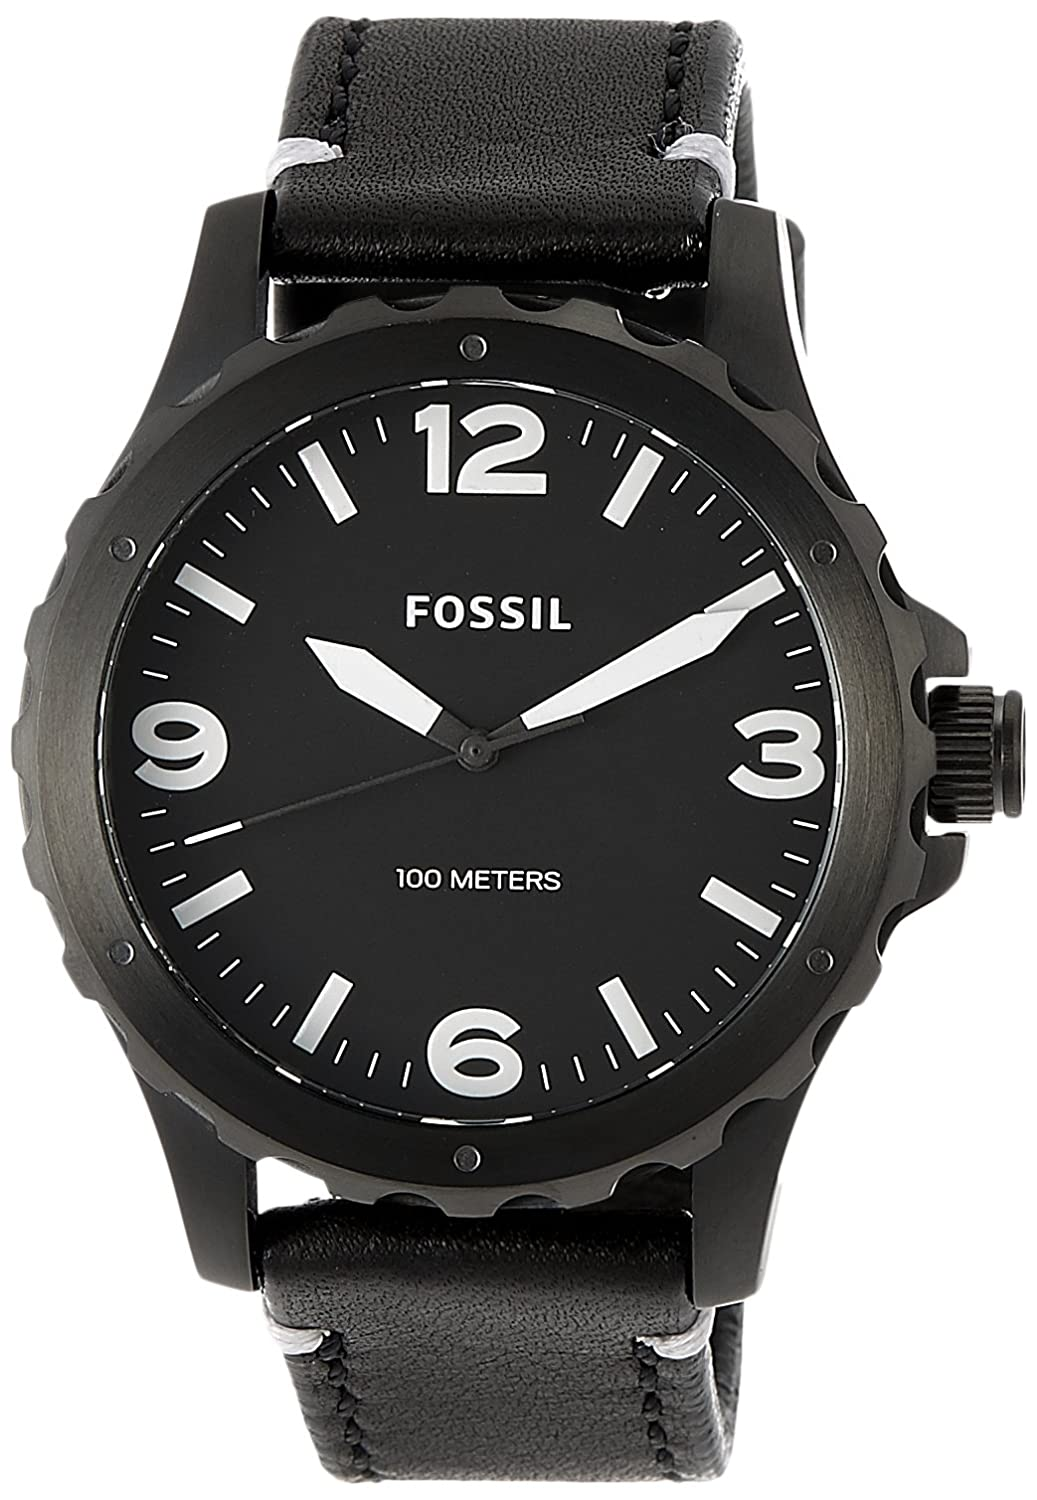 Fossil Watches for Men & Women low price image 1